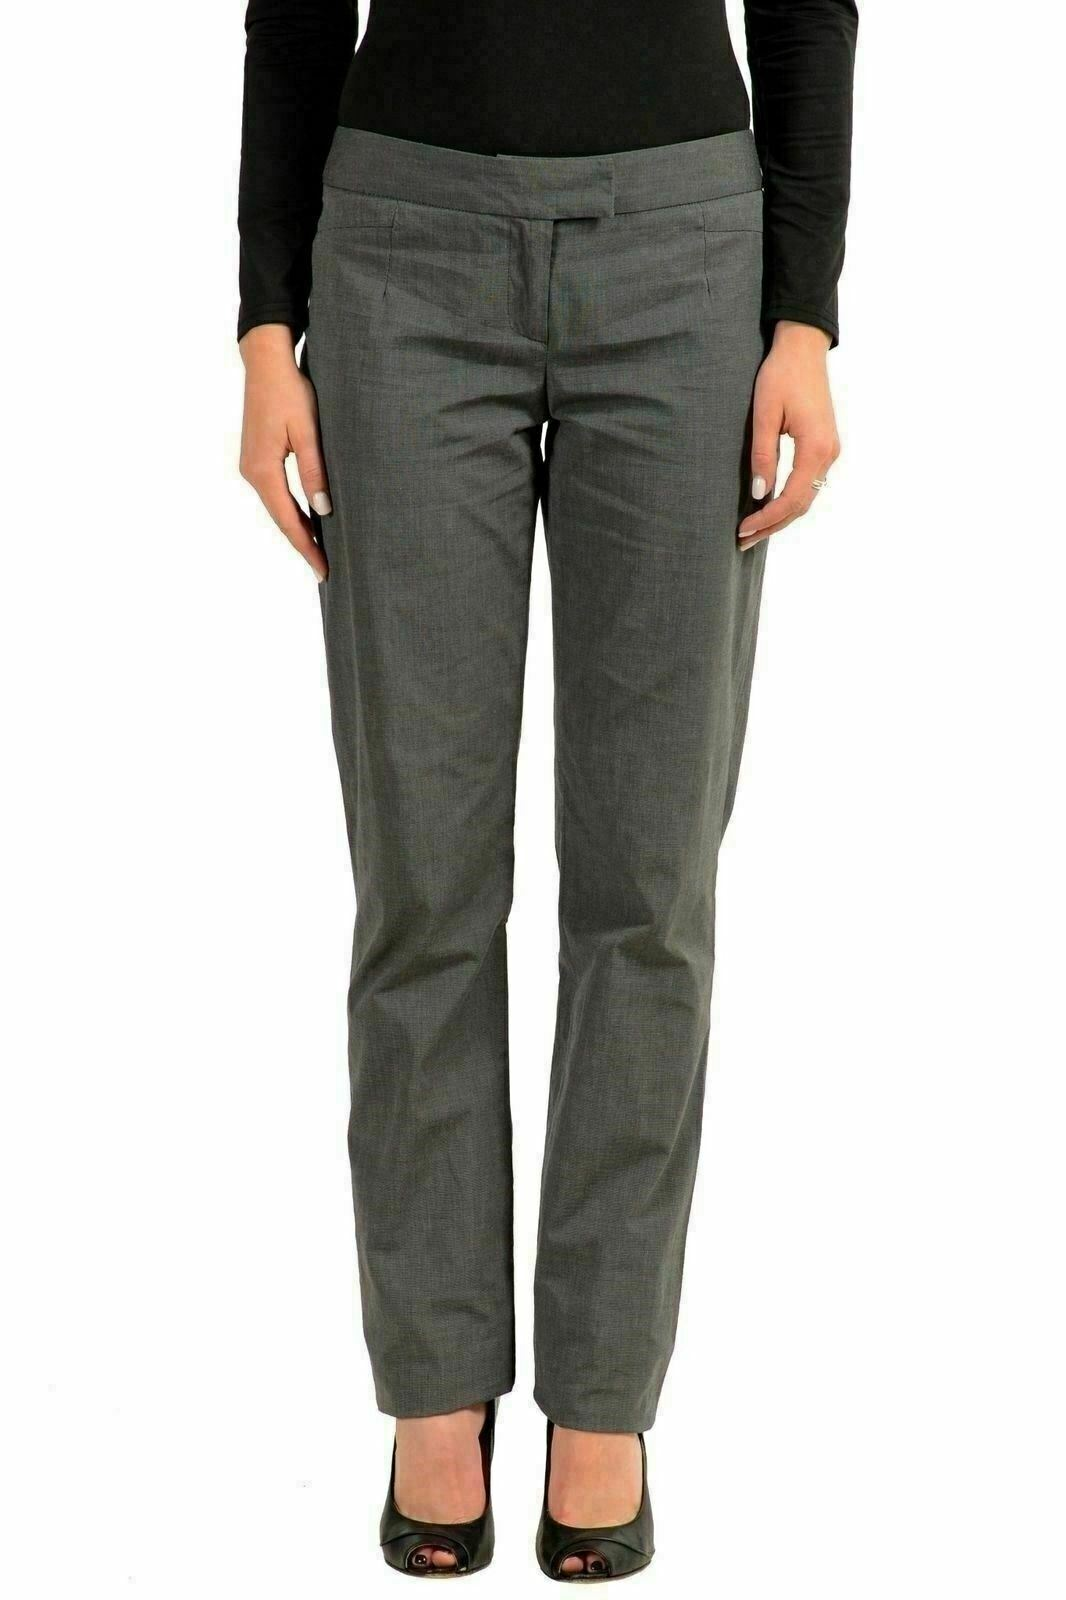 John Galliano Donna Grigio Pantaloni Casual USA 26 It 40